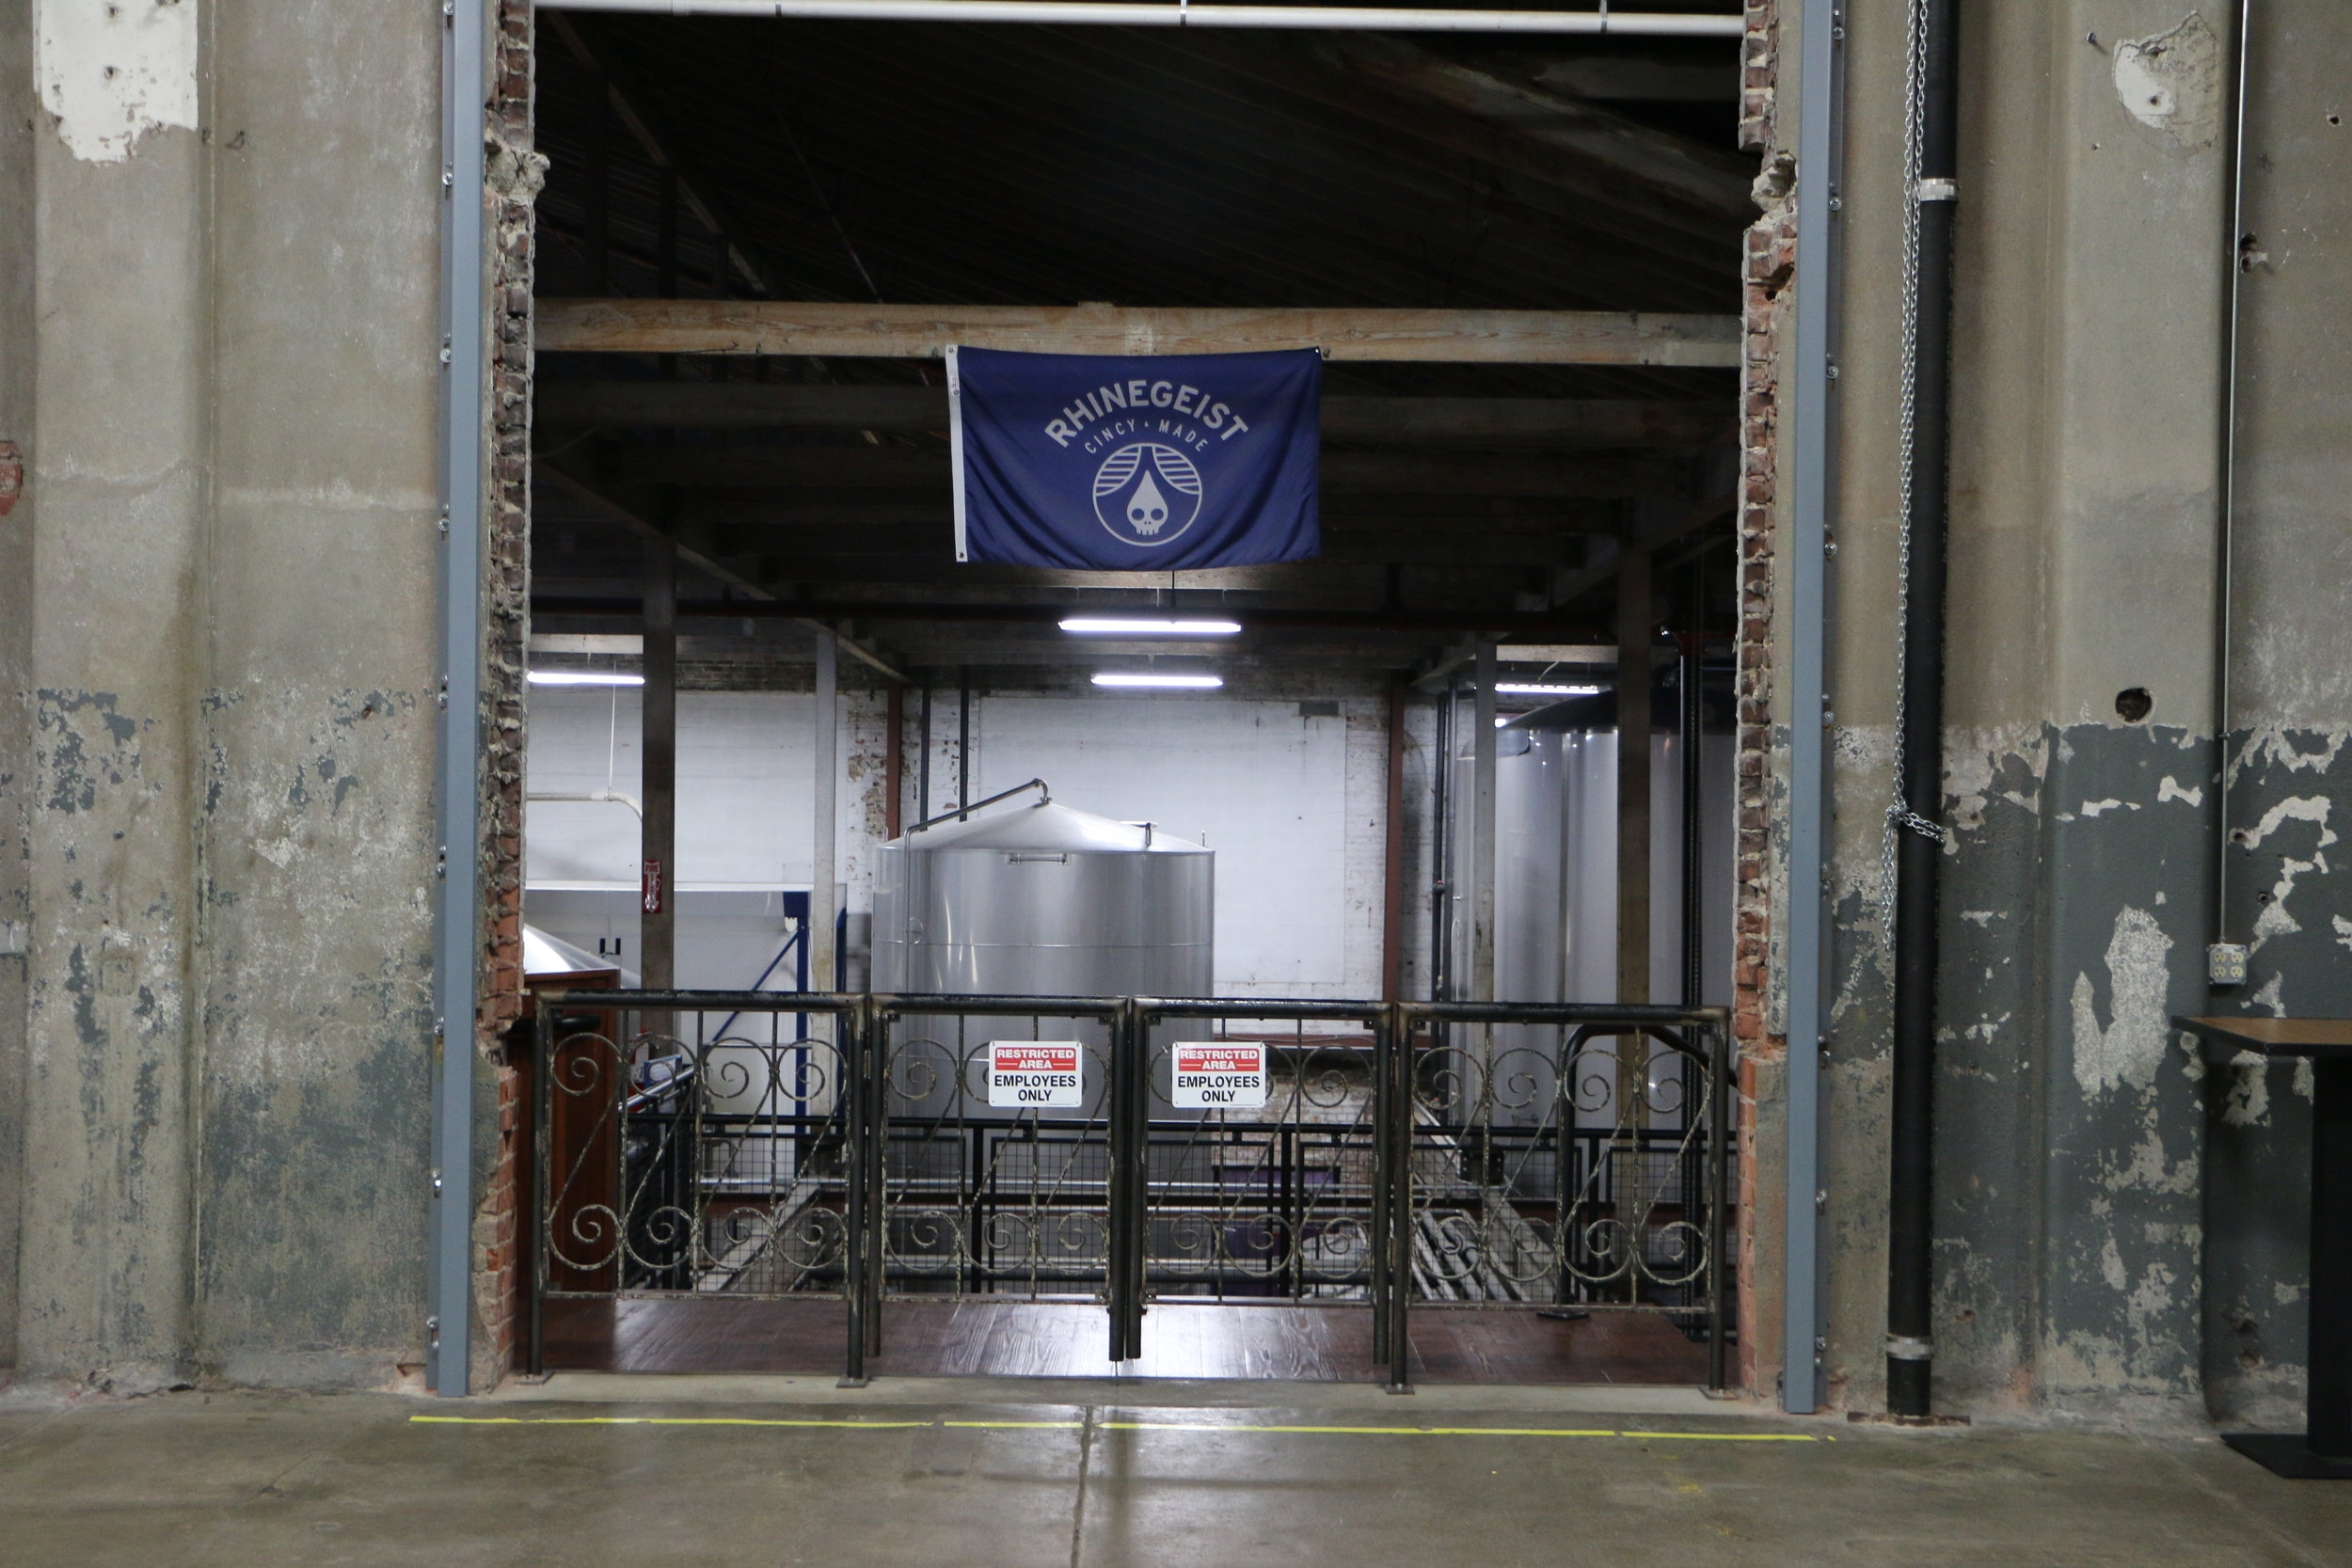 Authenticity & Awesomeness:Bryant Goulding of Rhinegeist Brewery